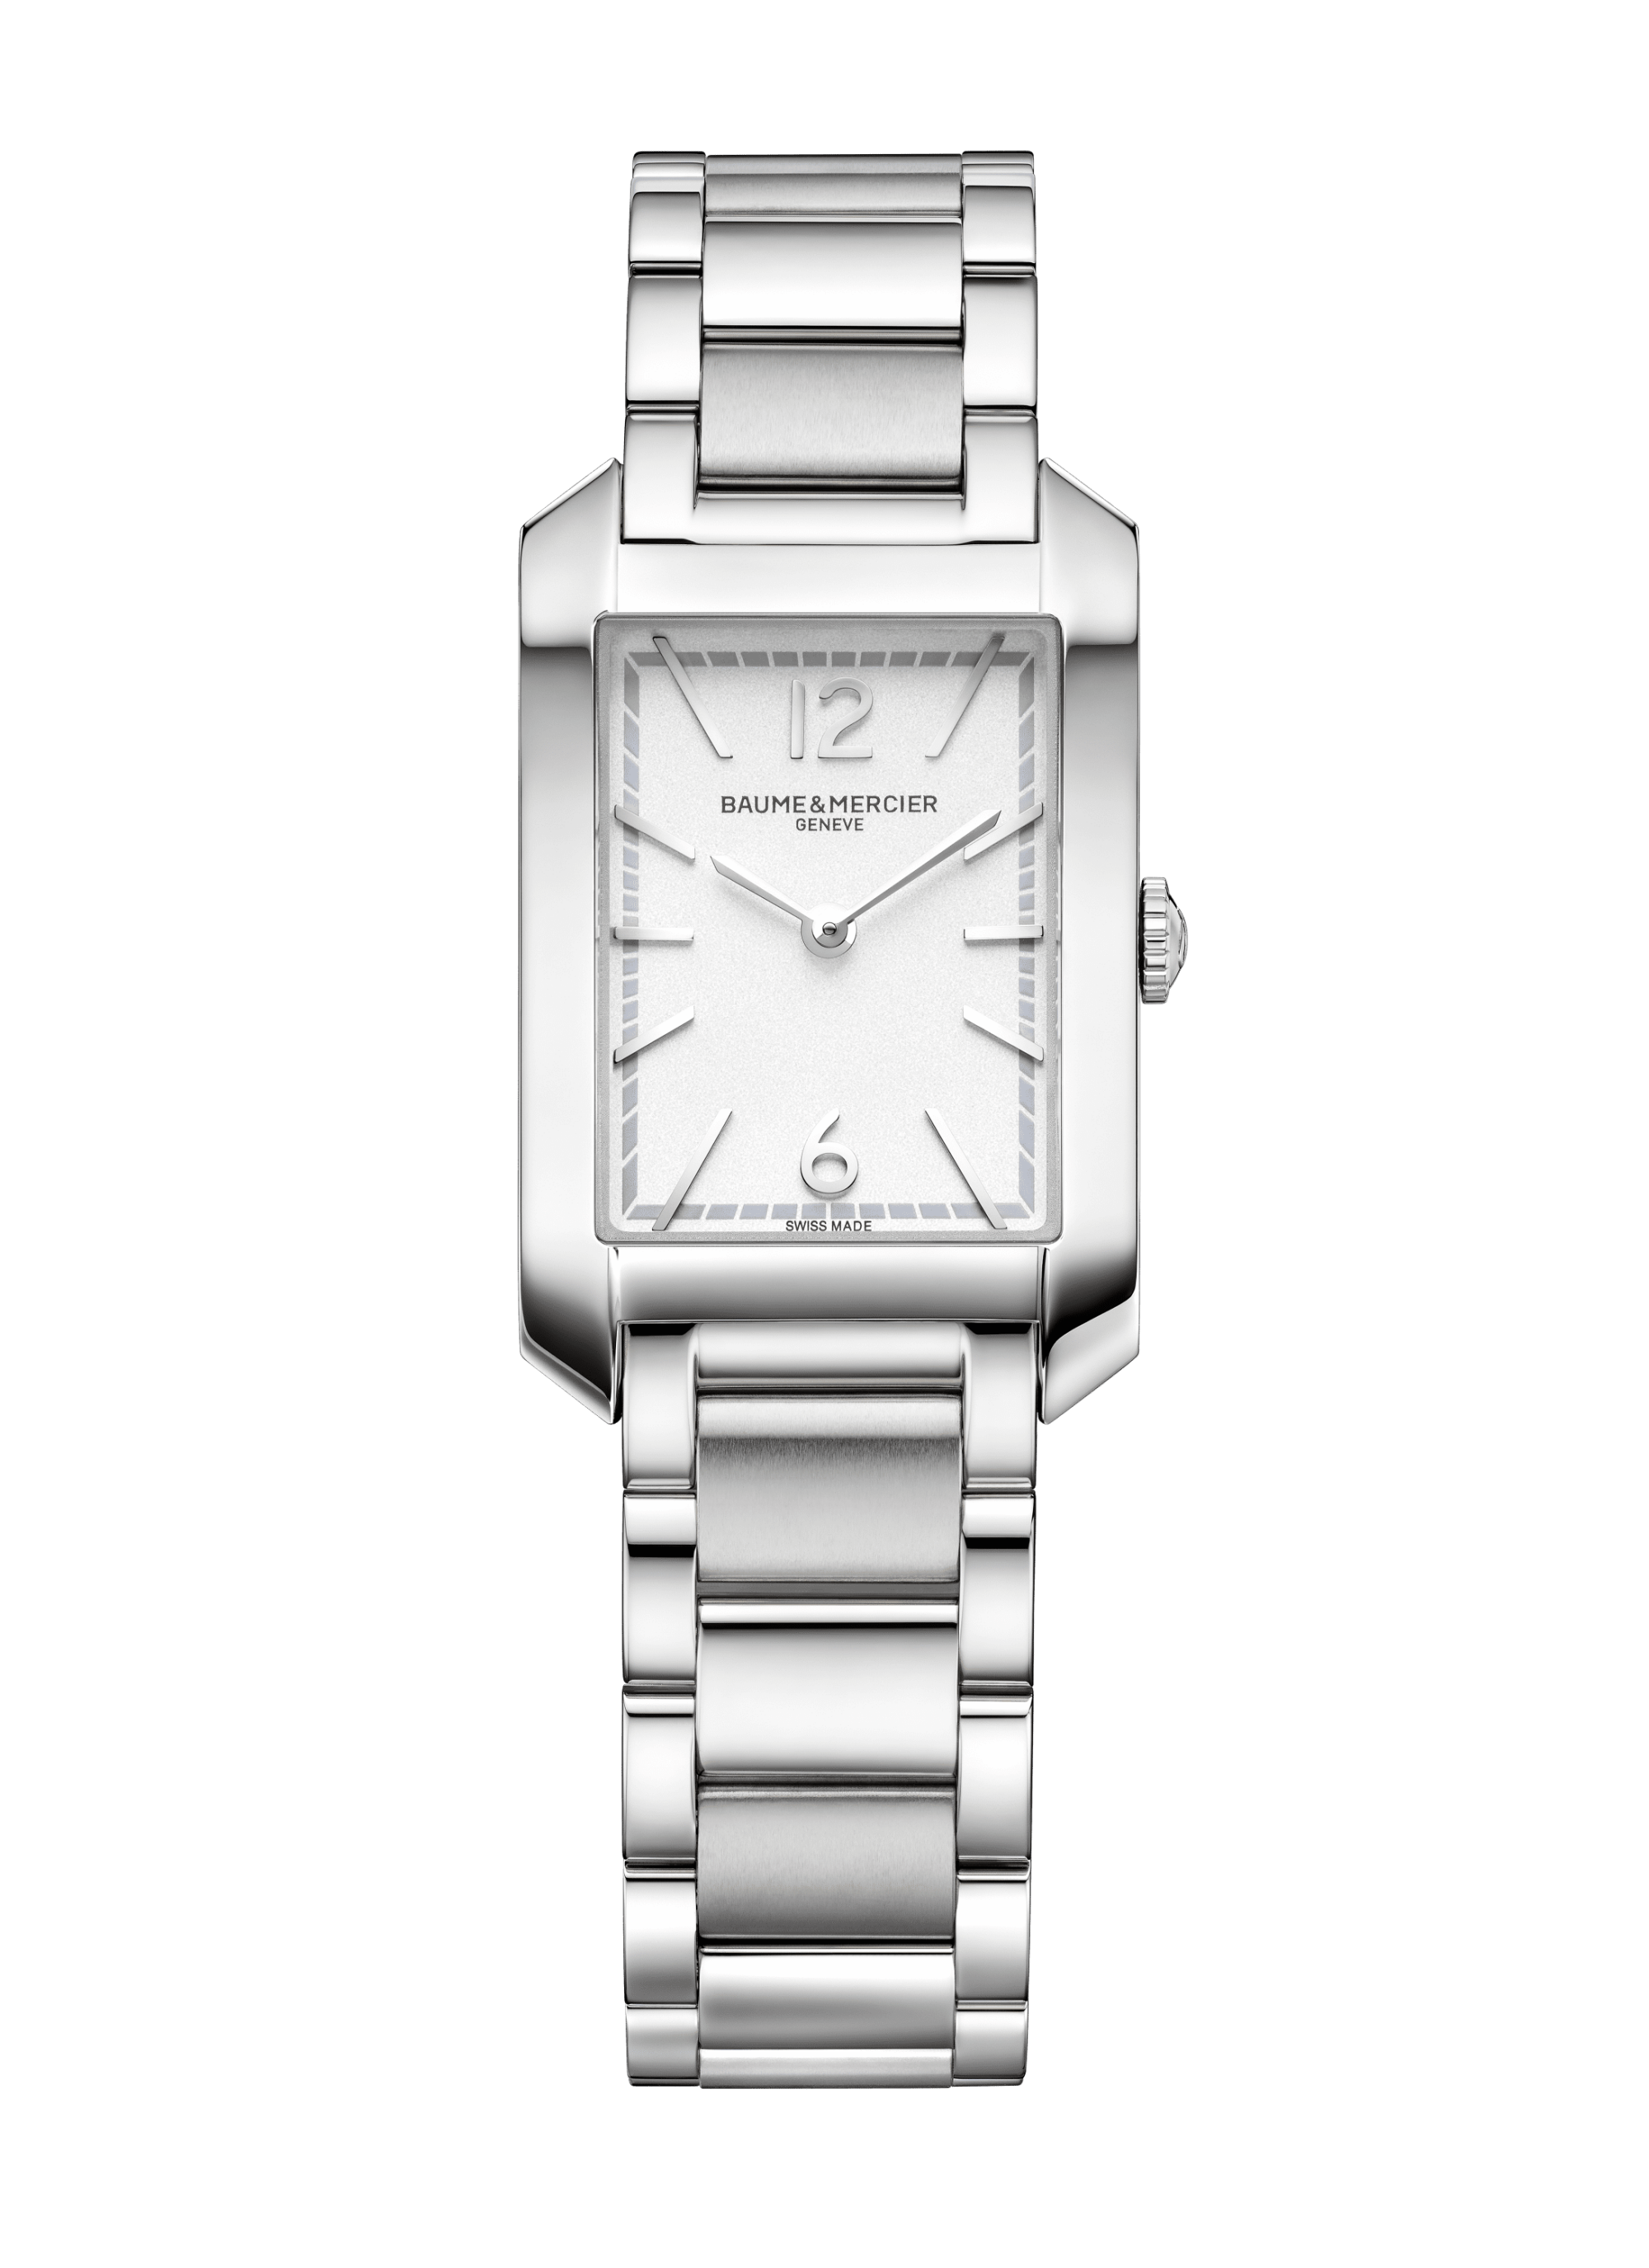 Hampton 10473 Watch for ladies | Check Prices on Baume & Mercier Front -